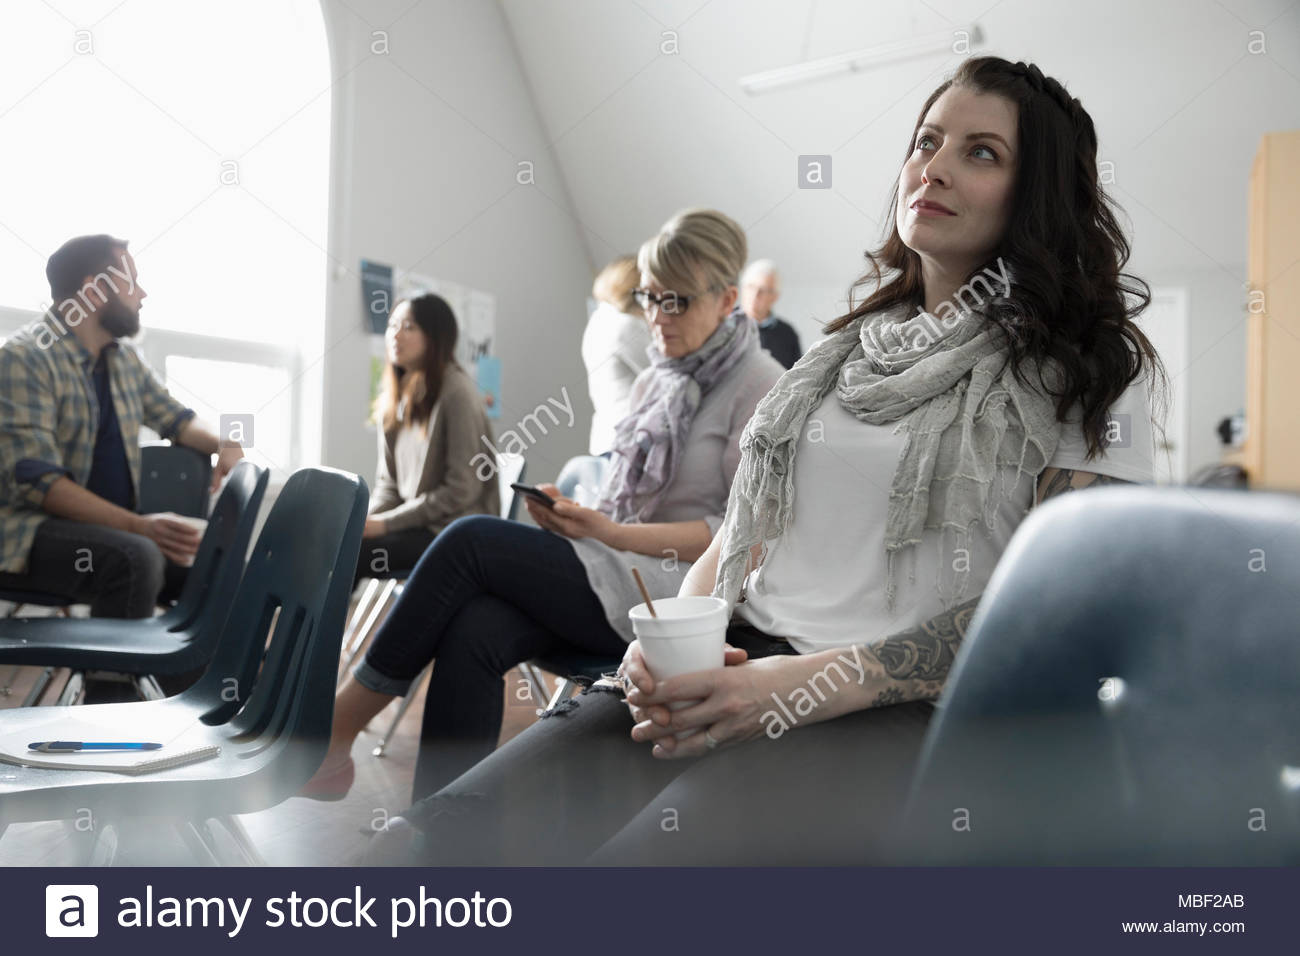 Thoughtful woman drinking coffee and listening at support group in community center - Stock Image